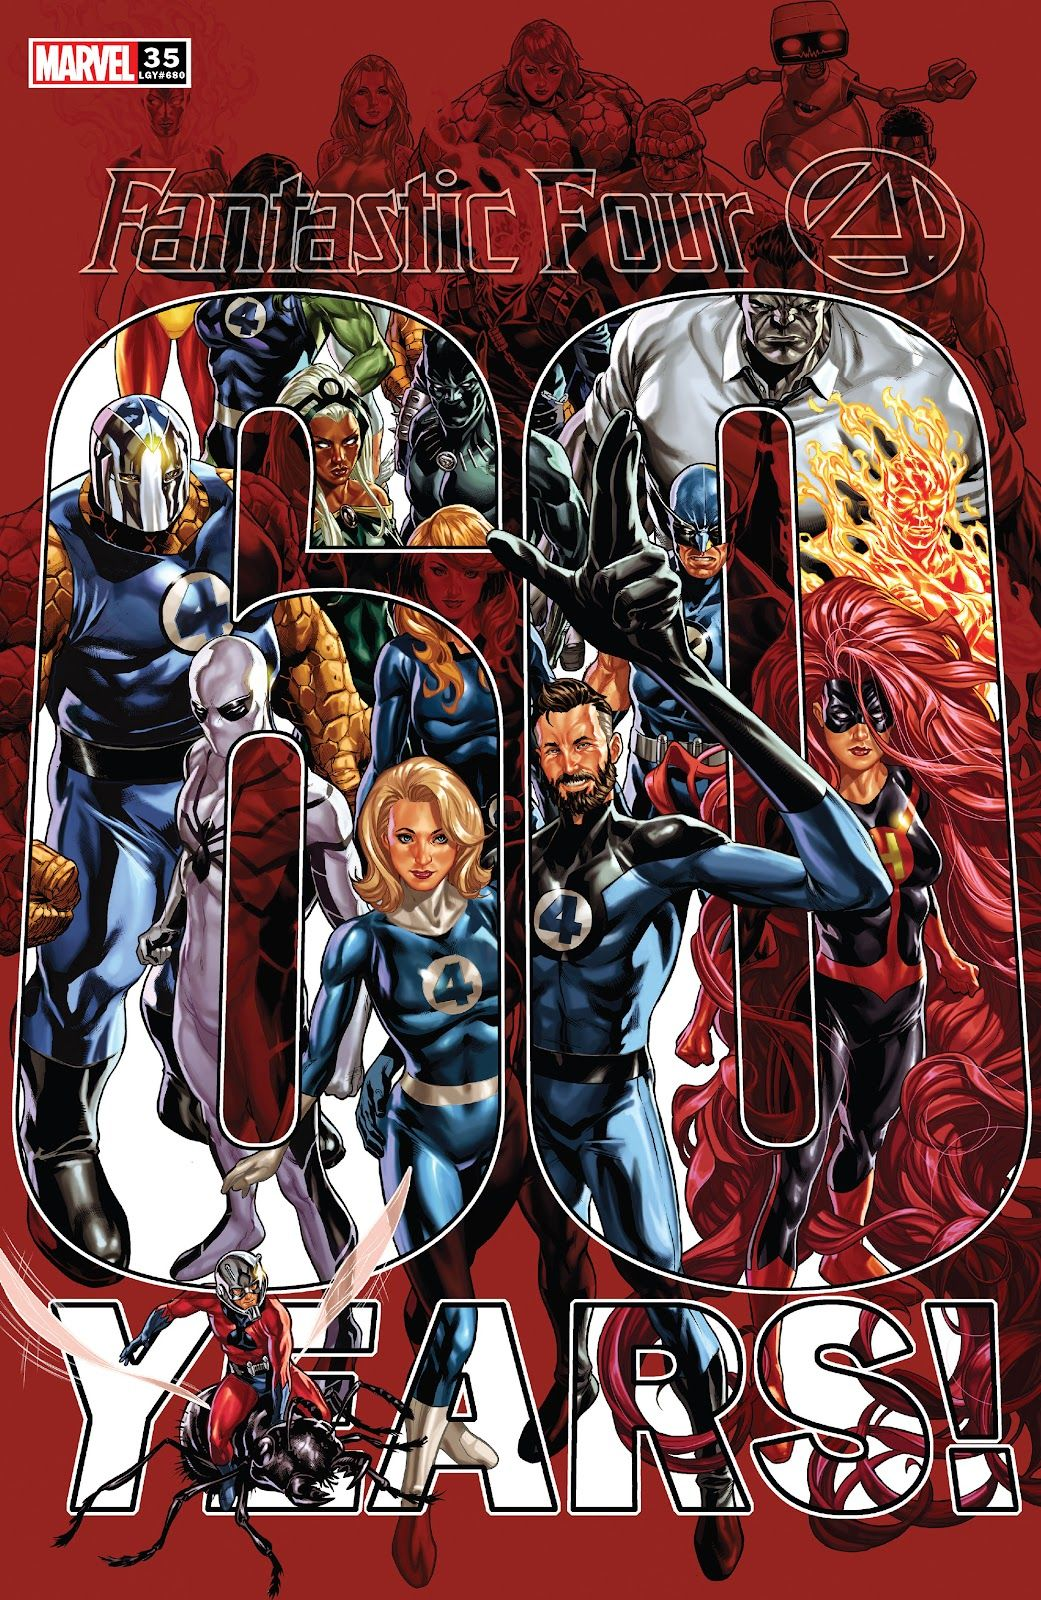 A special issue of 'Fantastic Four' #35 was released to commemorate the team's 60th anniversary.